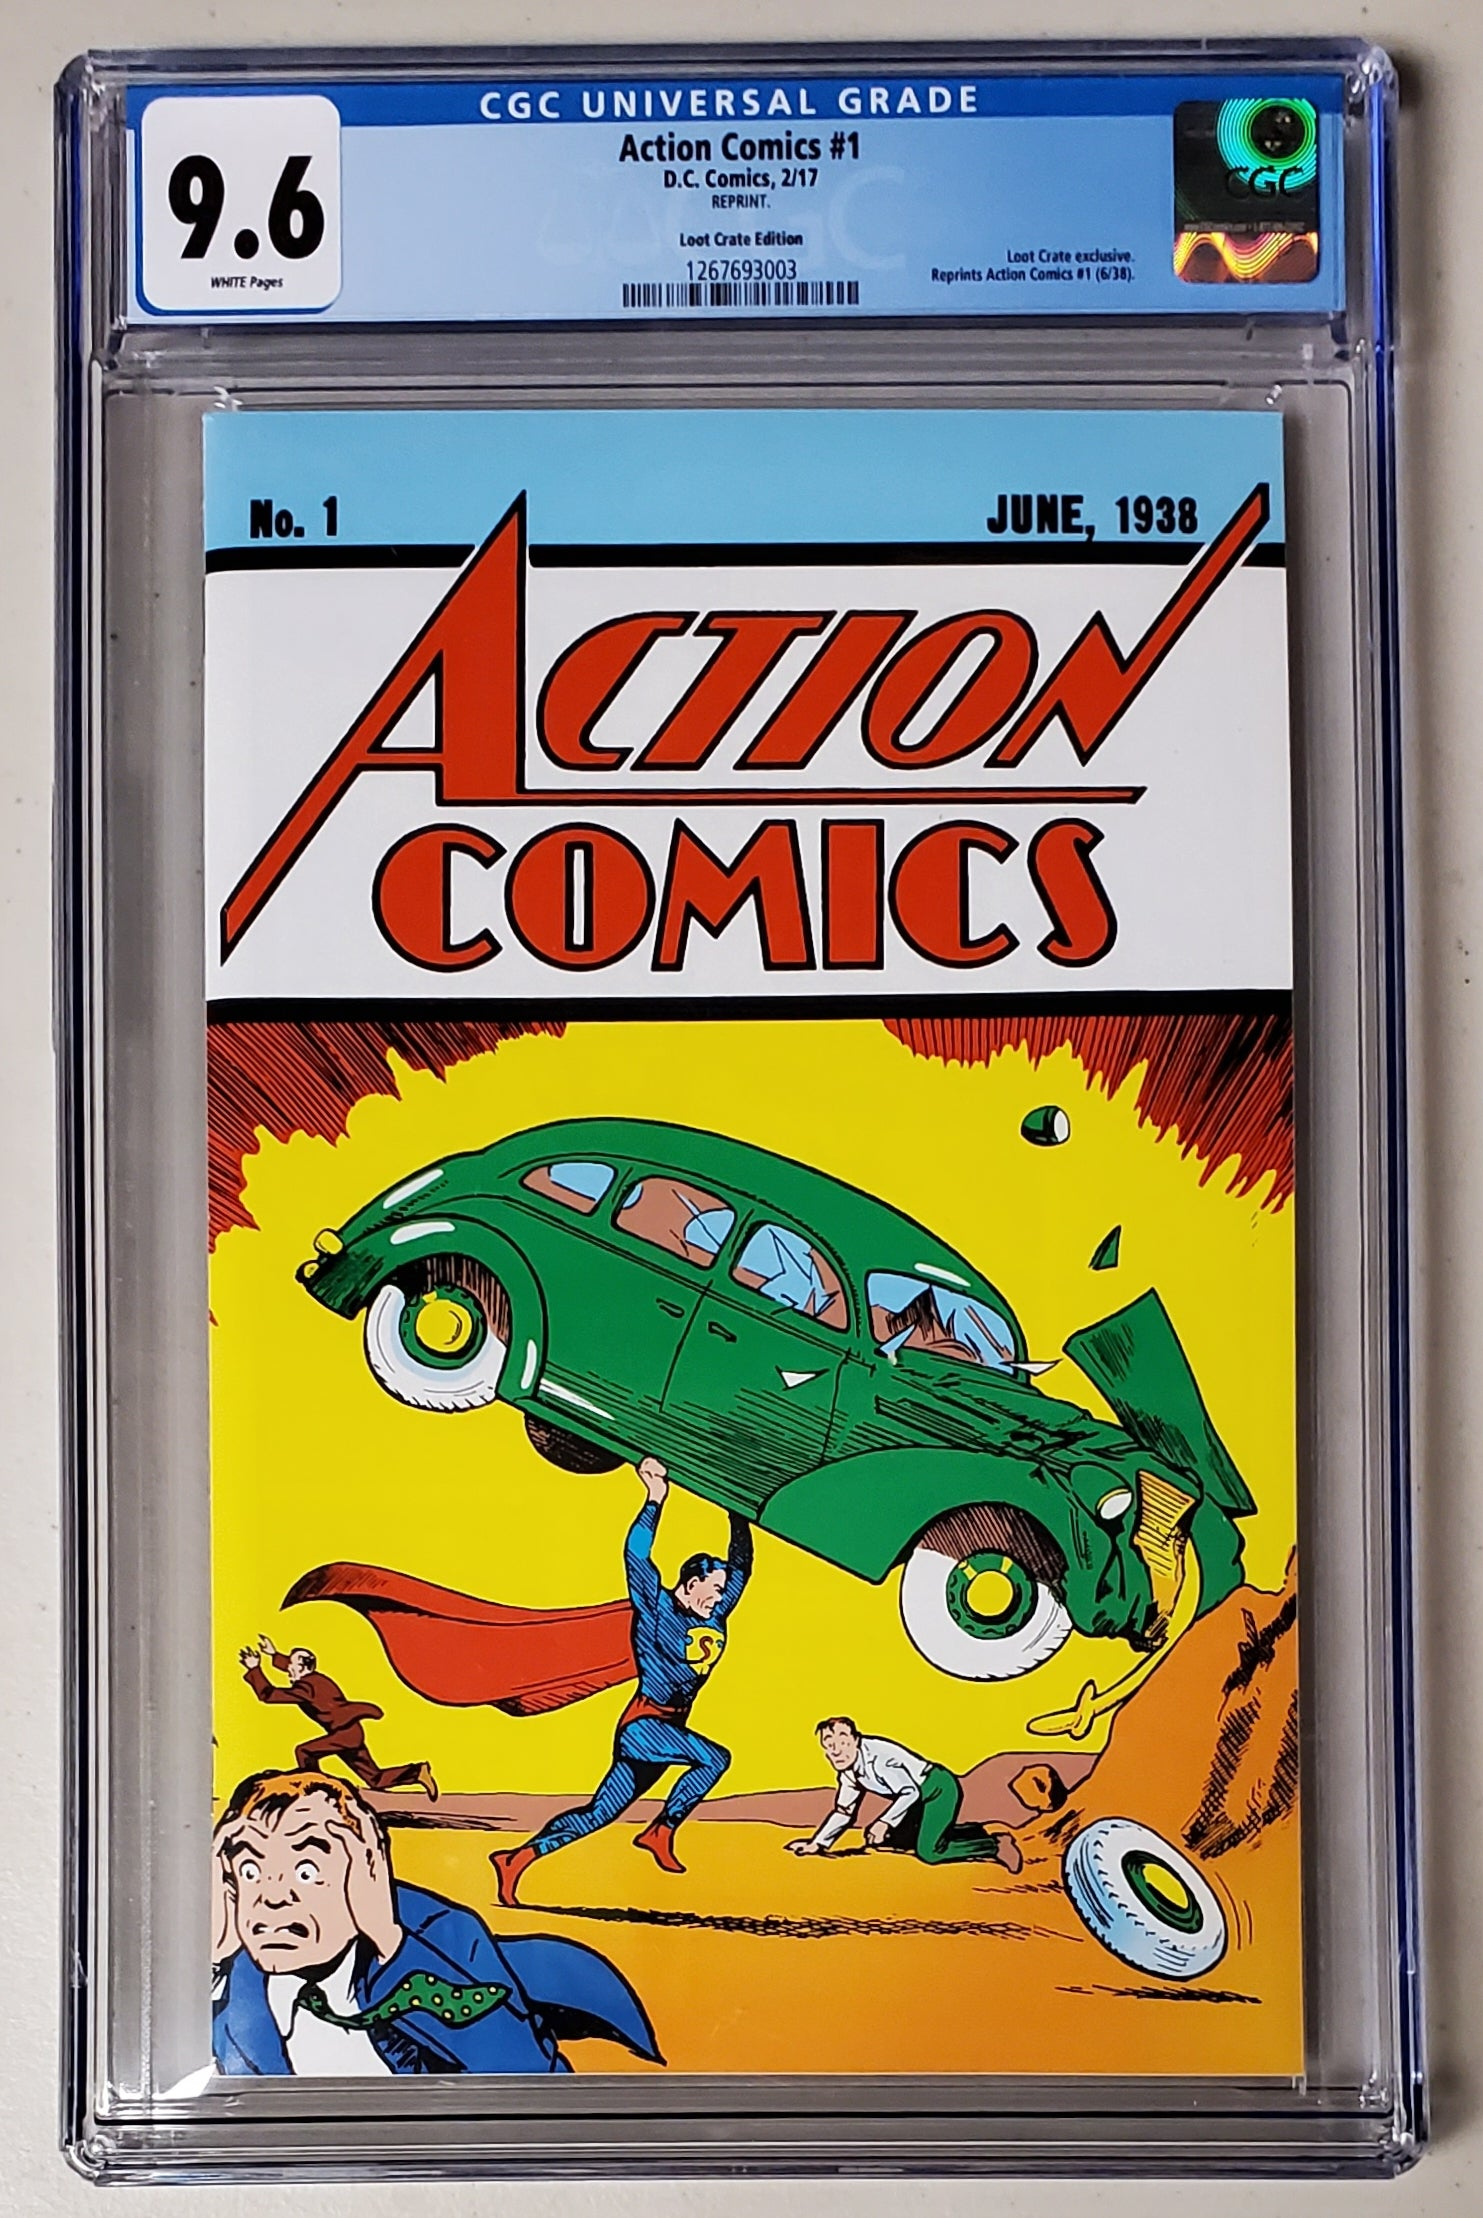 9.6 CGC Action Comics #1 Loot Crate Variant Reprint DC 2017